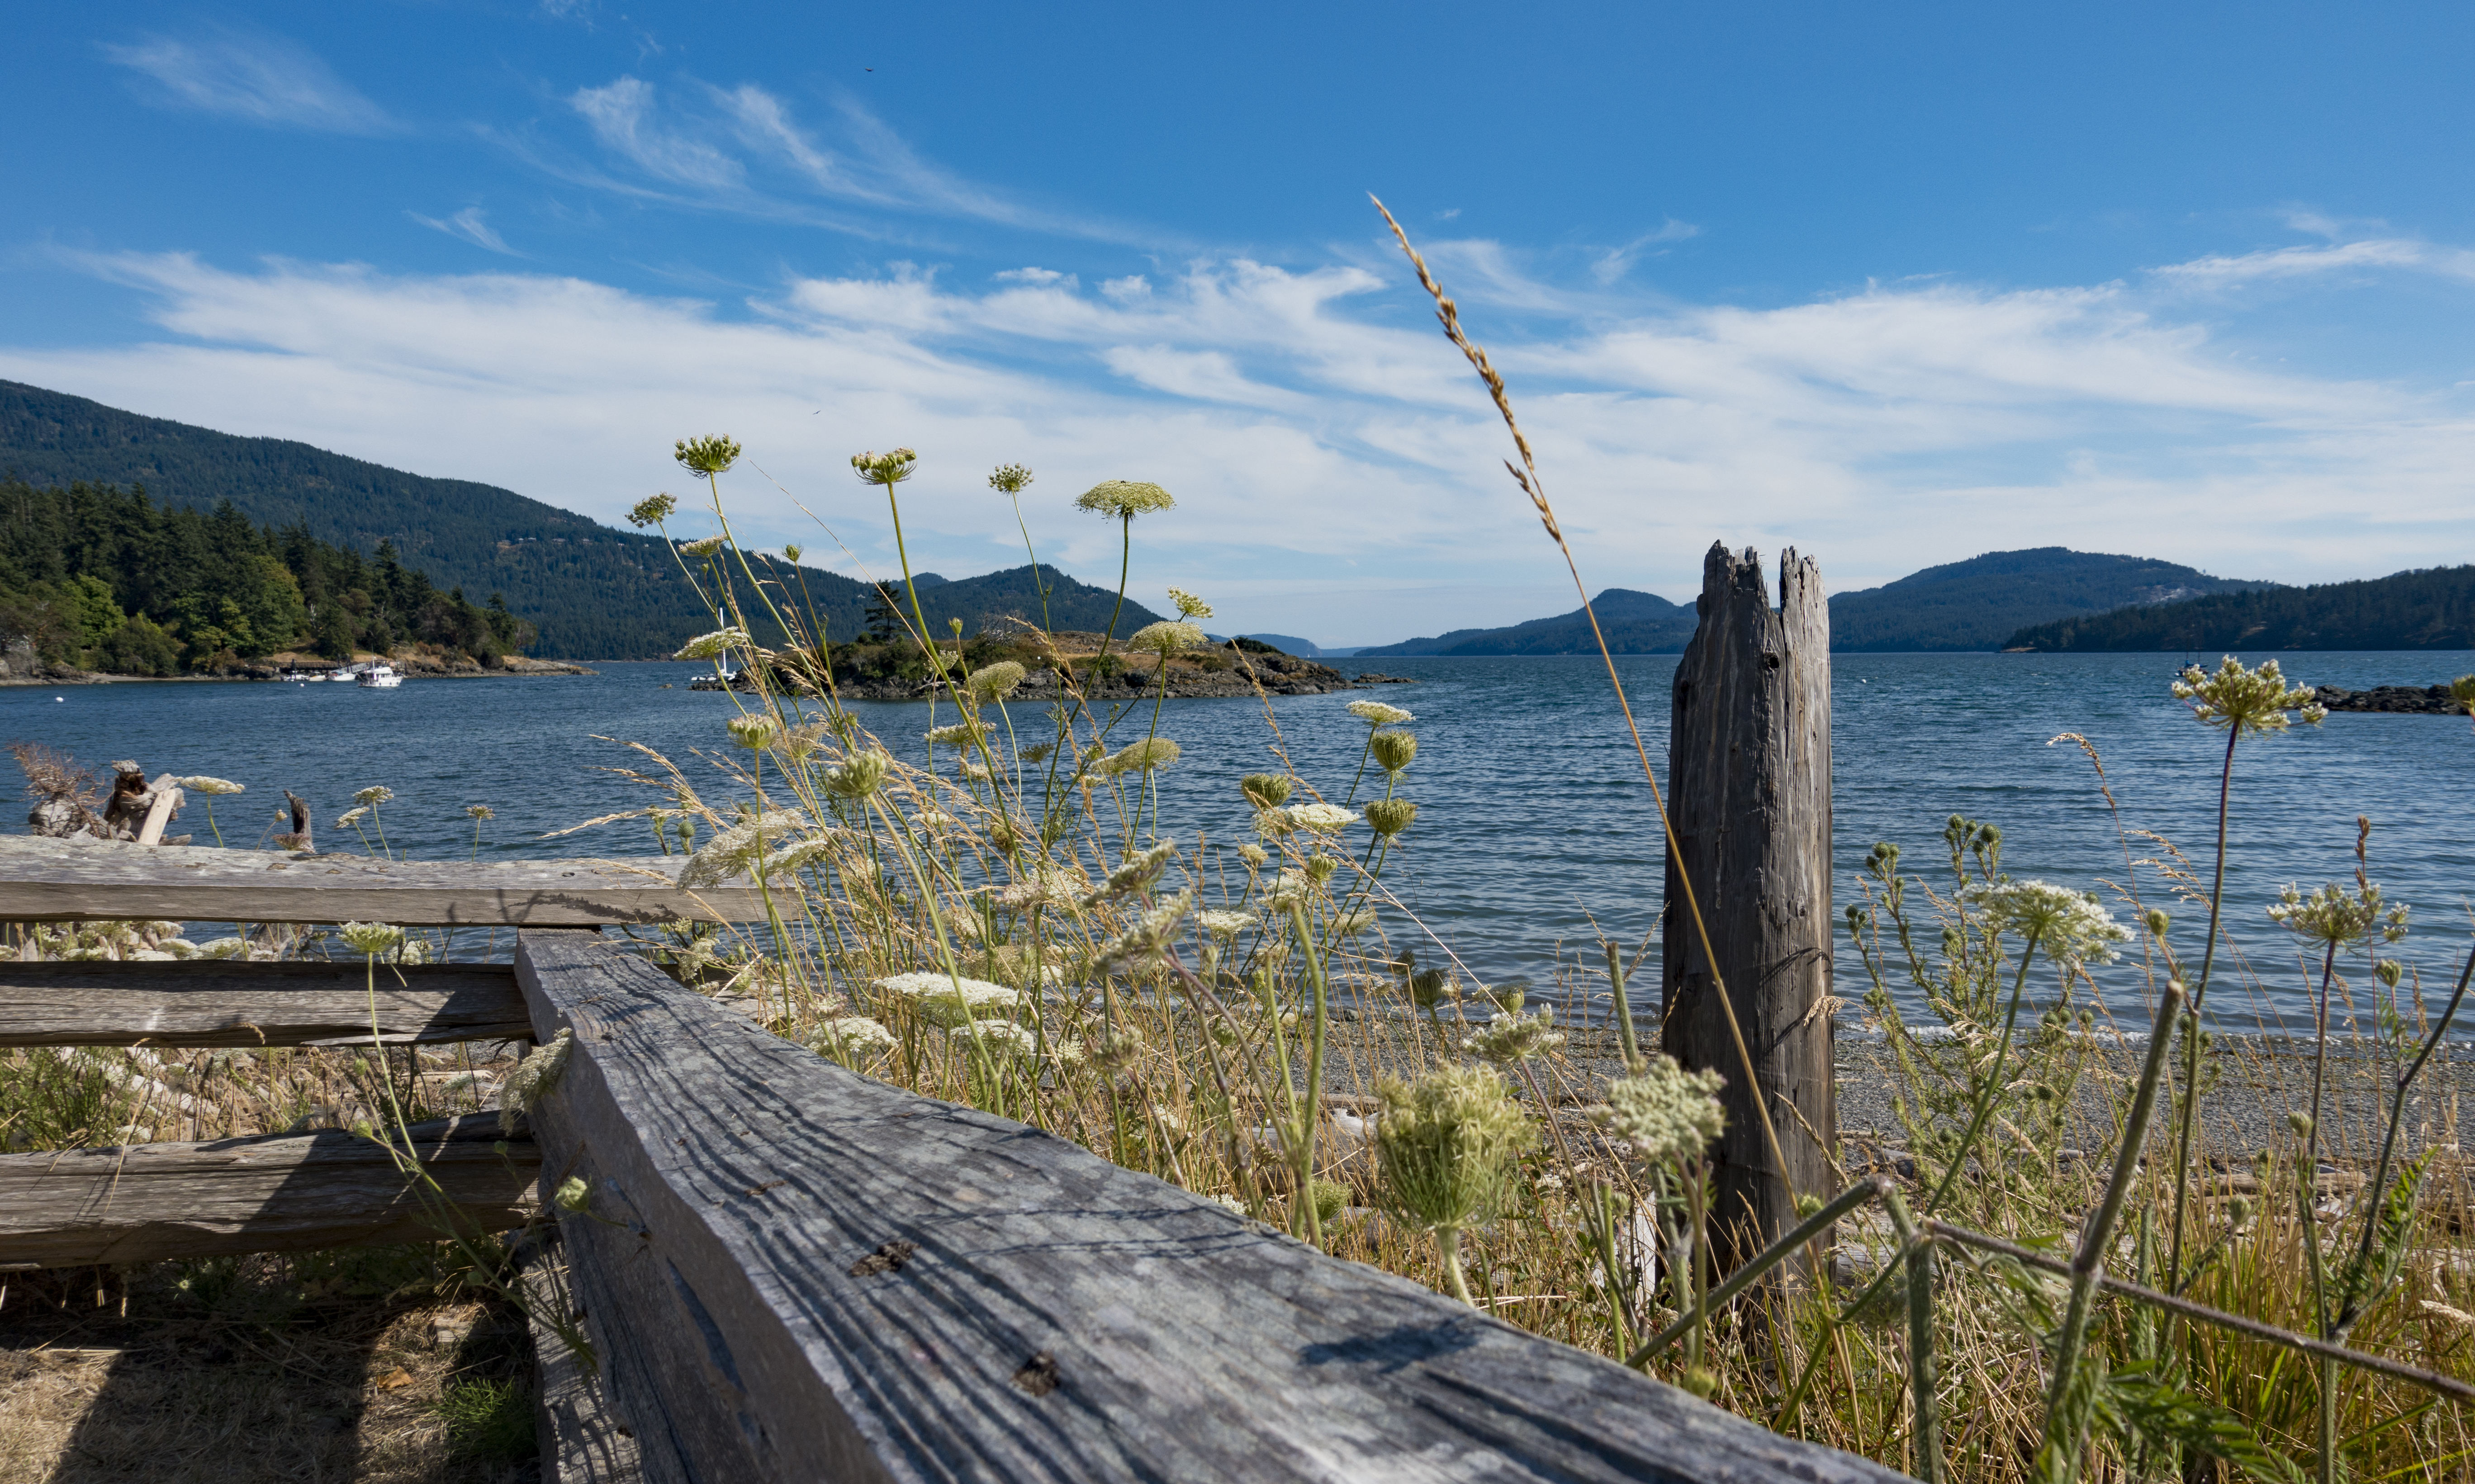 In the foreground is driftwood and wild flowers. In the distance is a body of water and mountains.